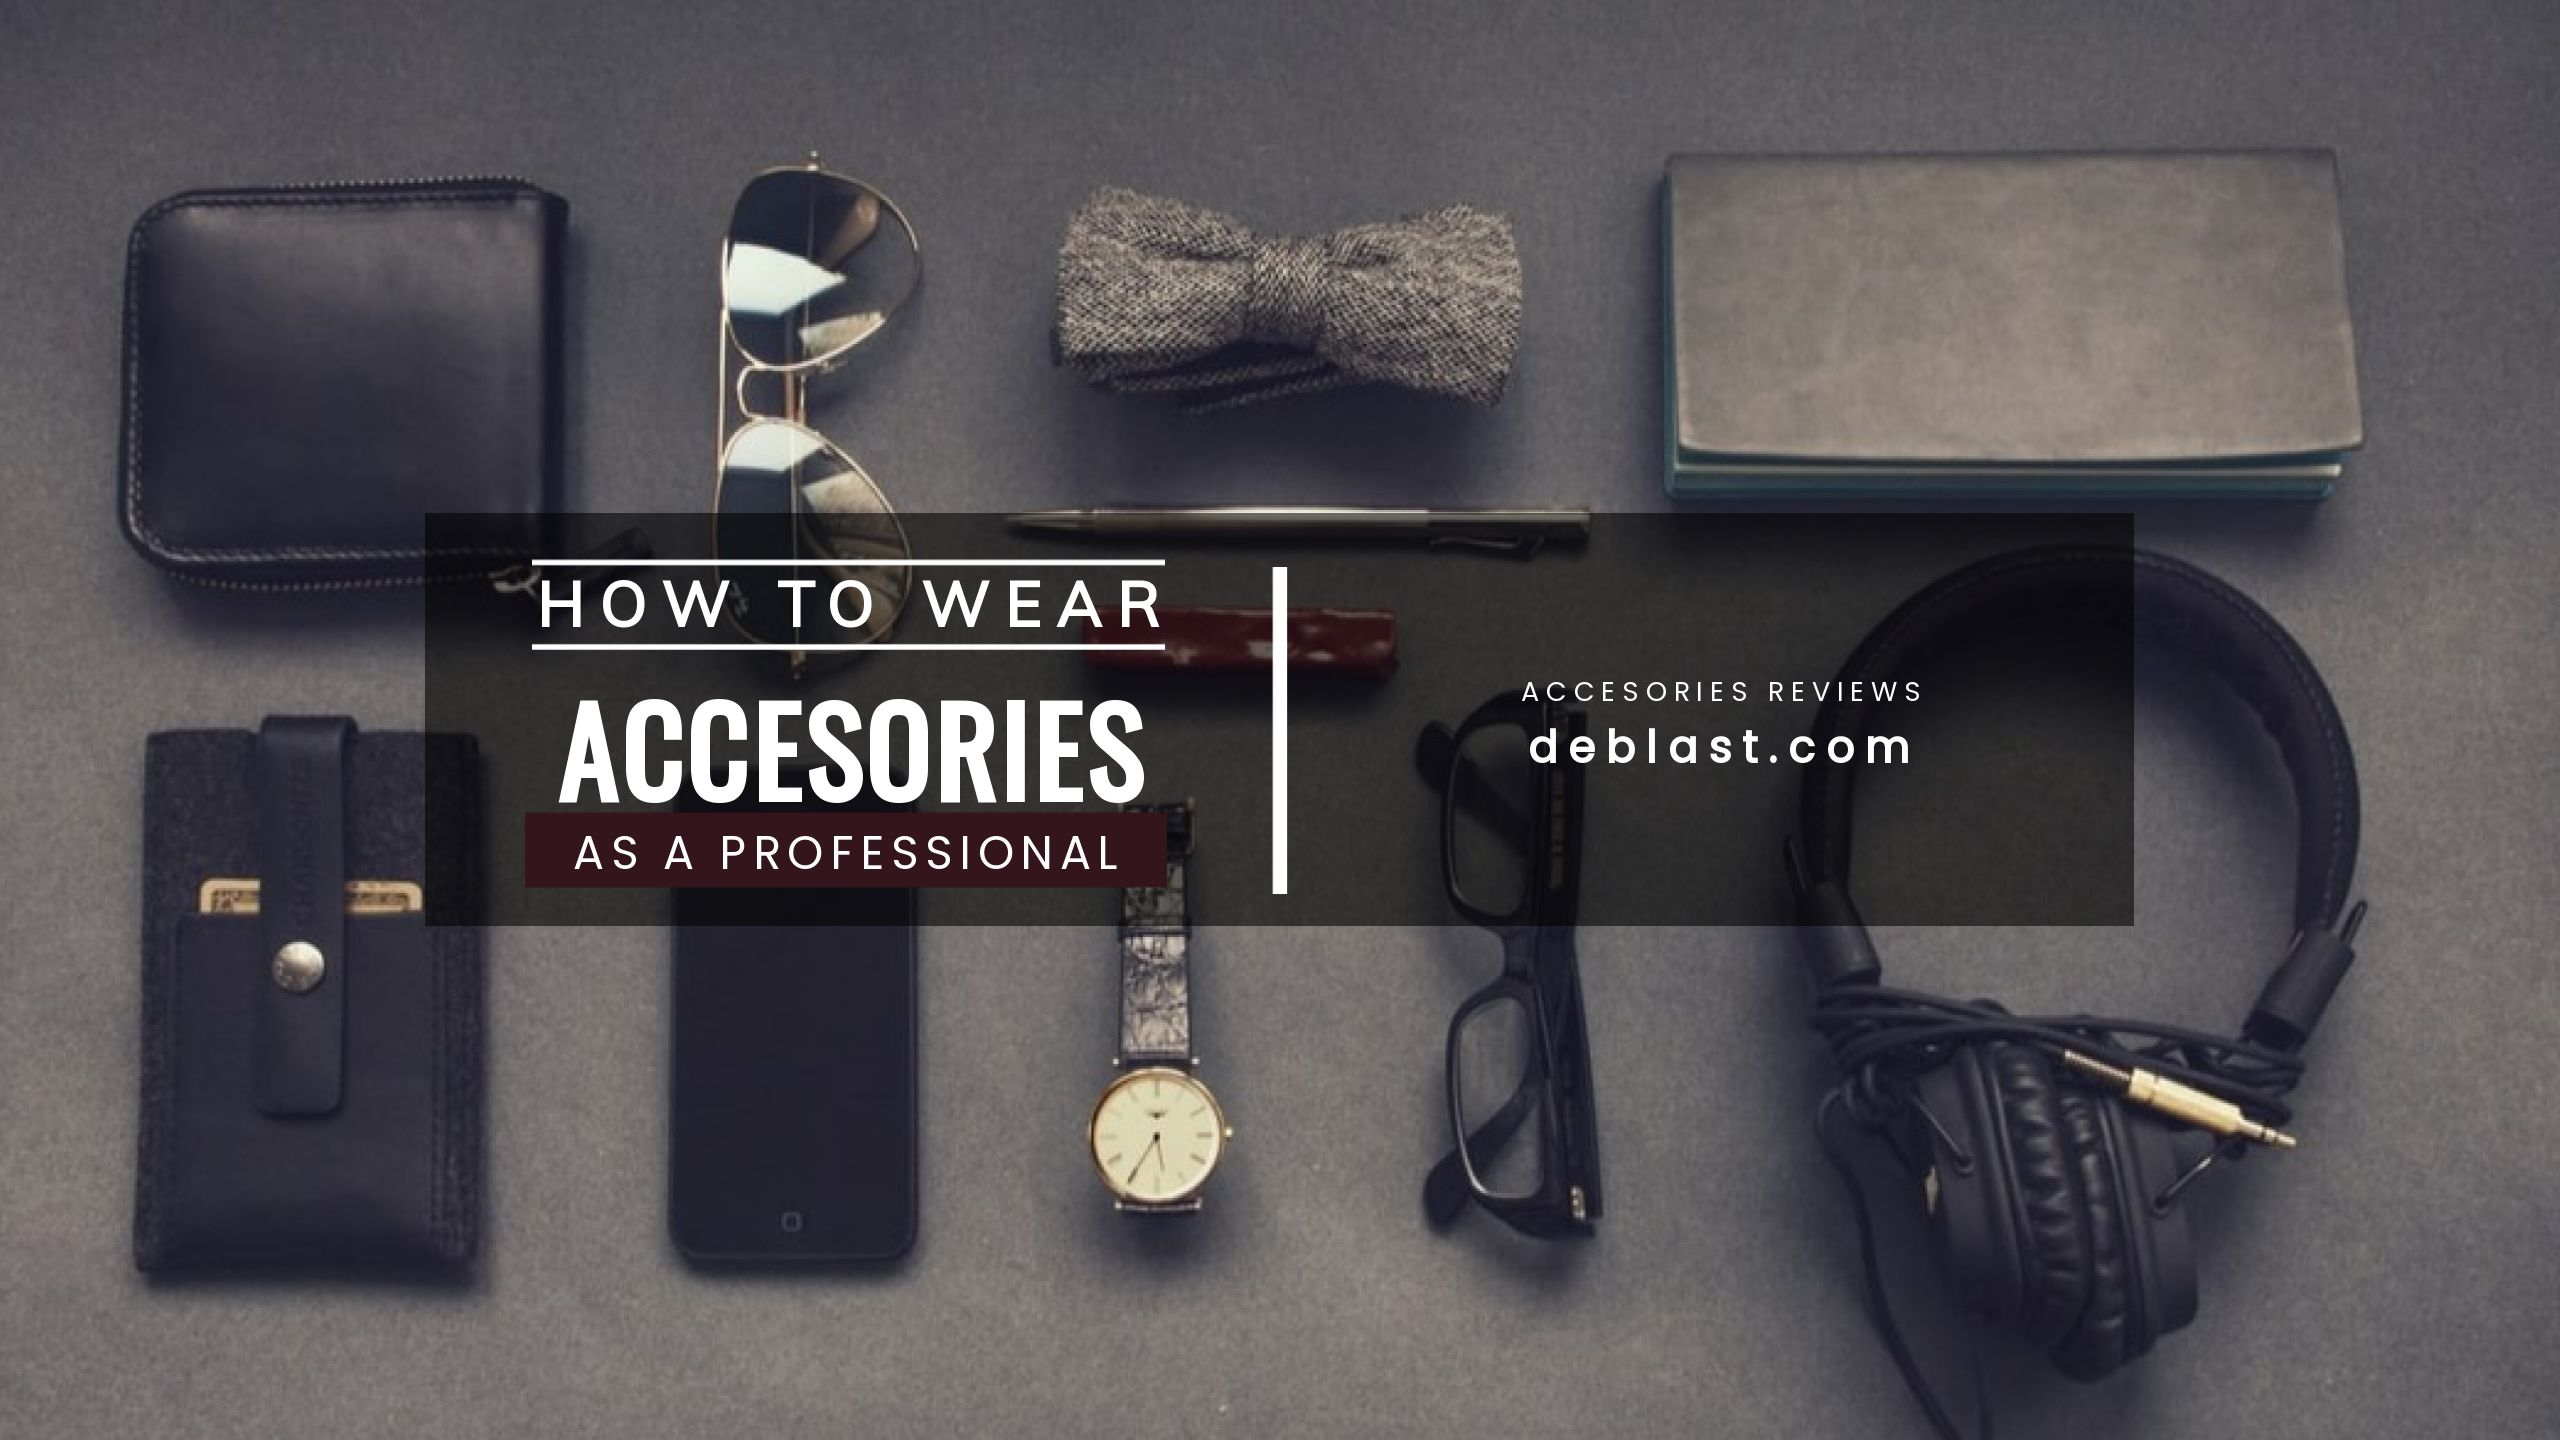 Accessories Reviews Youtube Channel Template